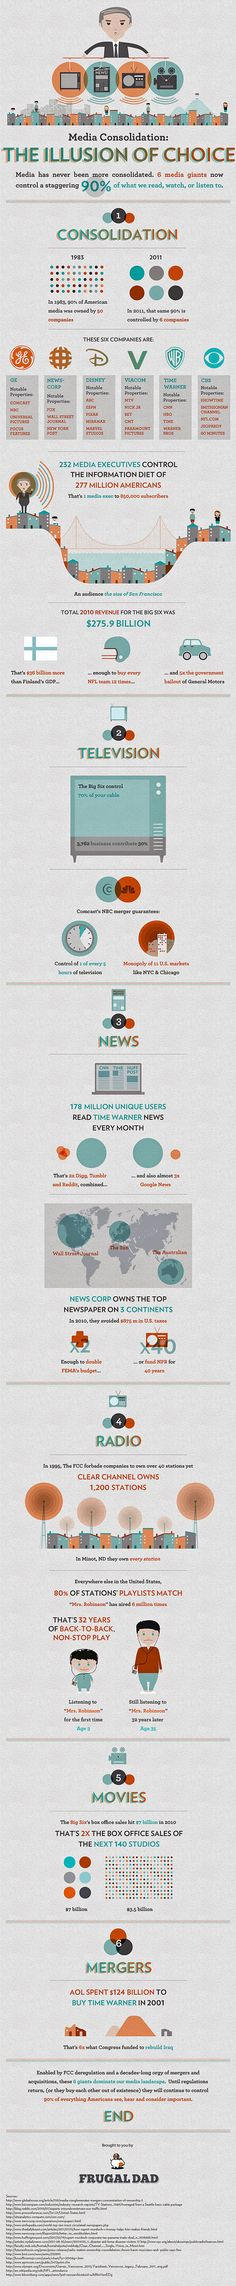 Media Consolidation: The illusion of choice. Infographic